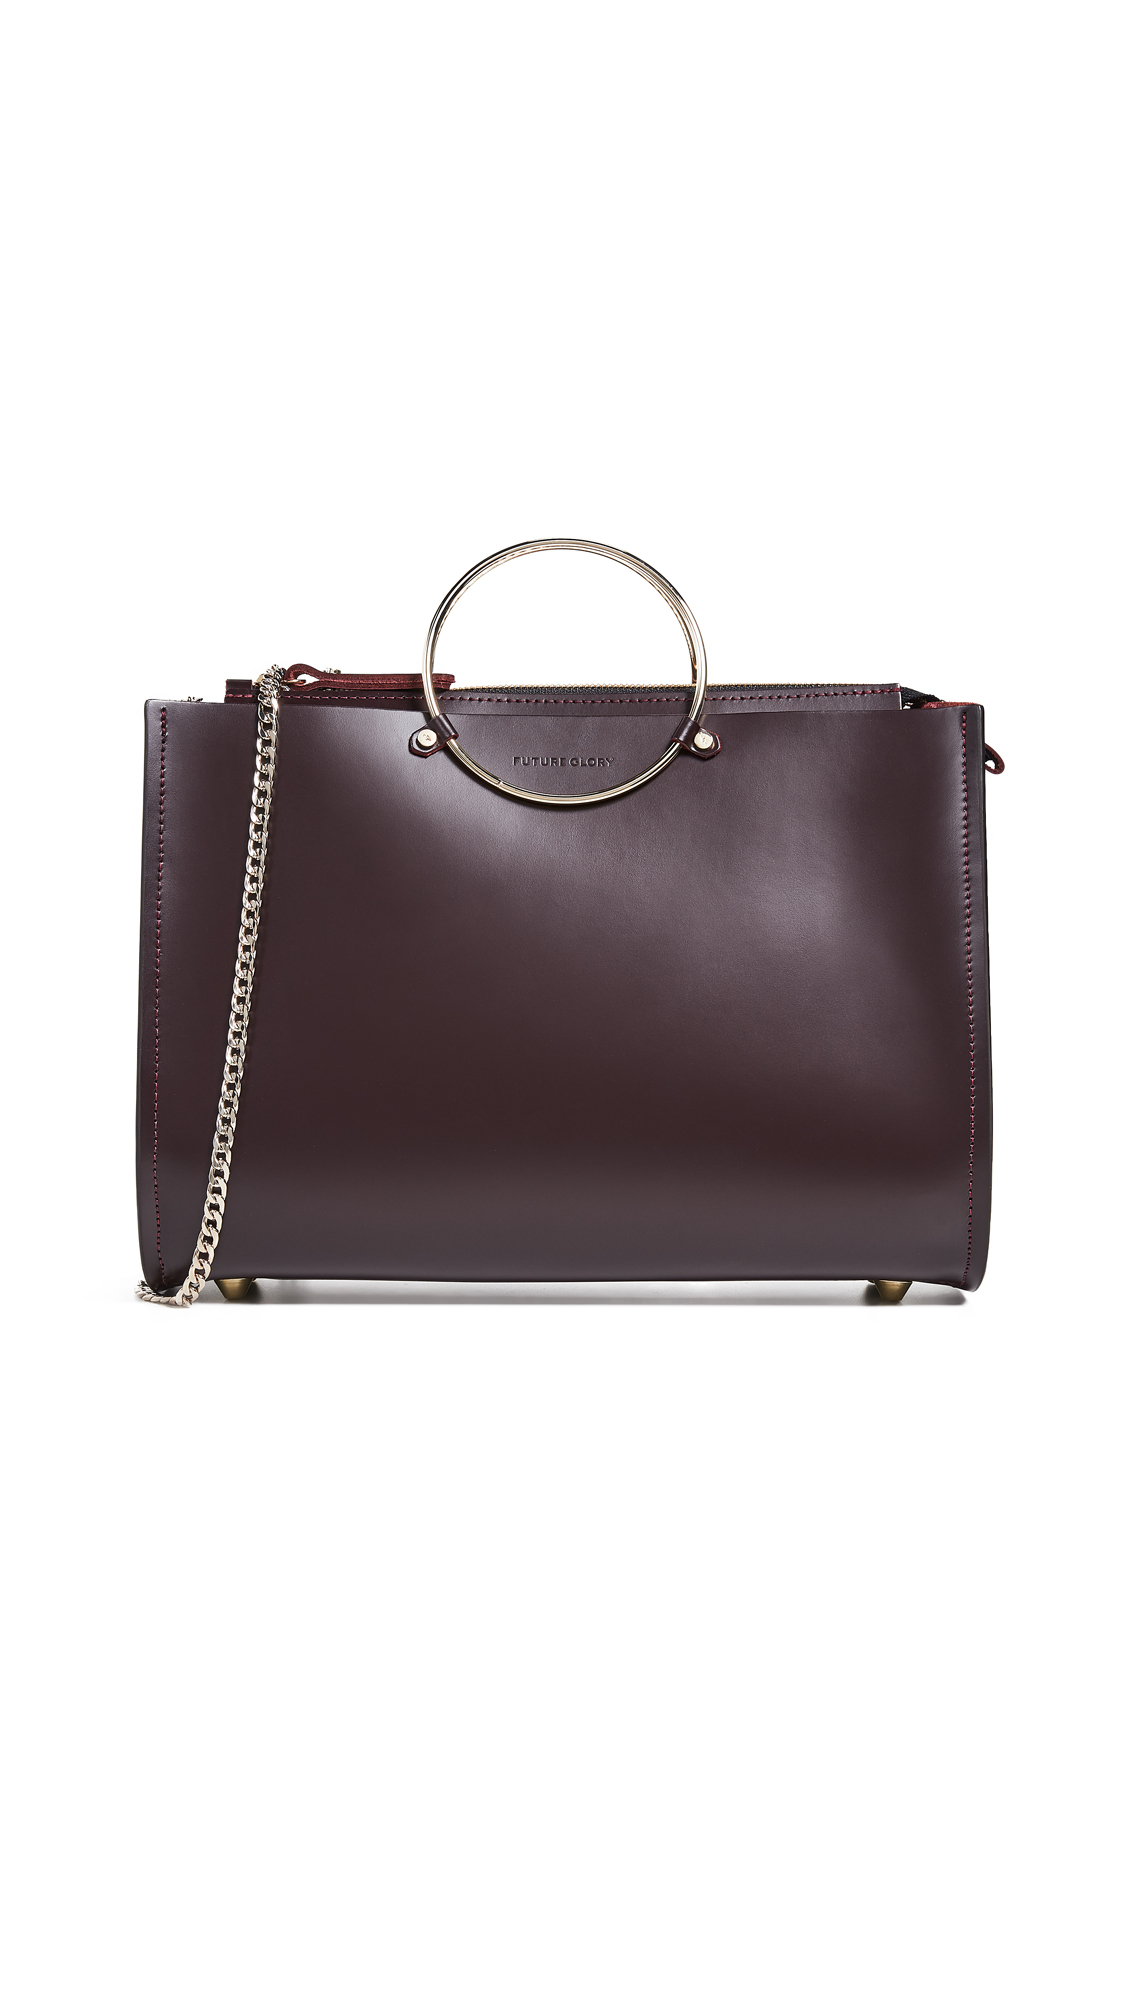 Future Glory Leathers ROCKWELL MAXI BAG